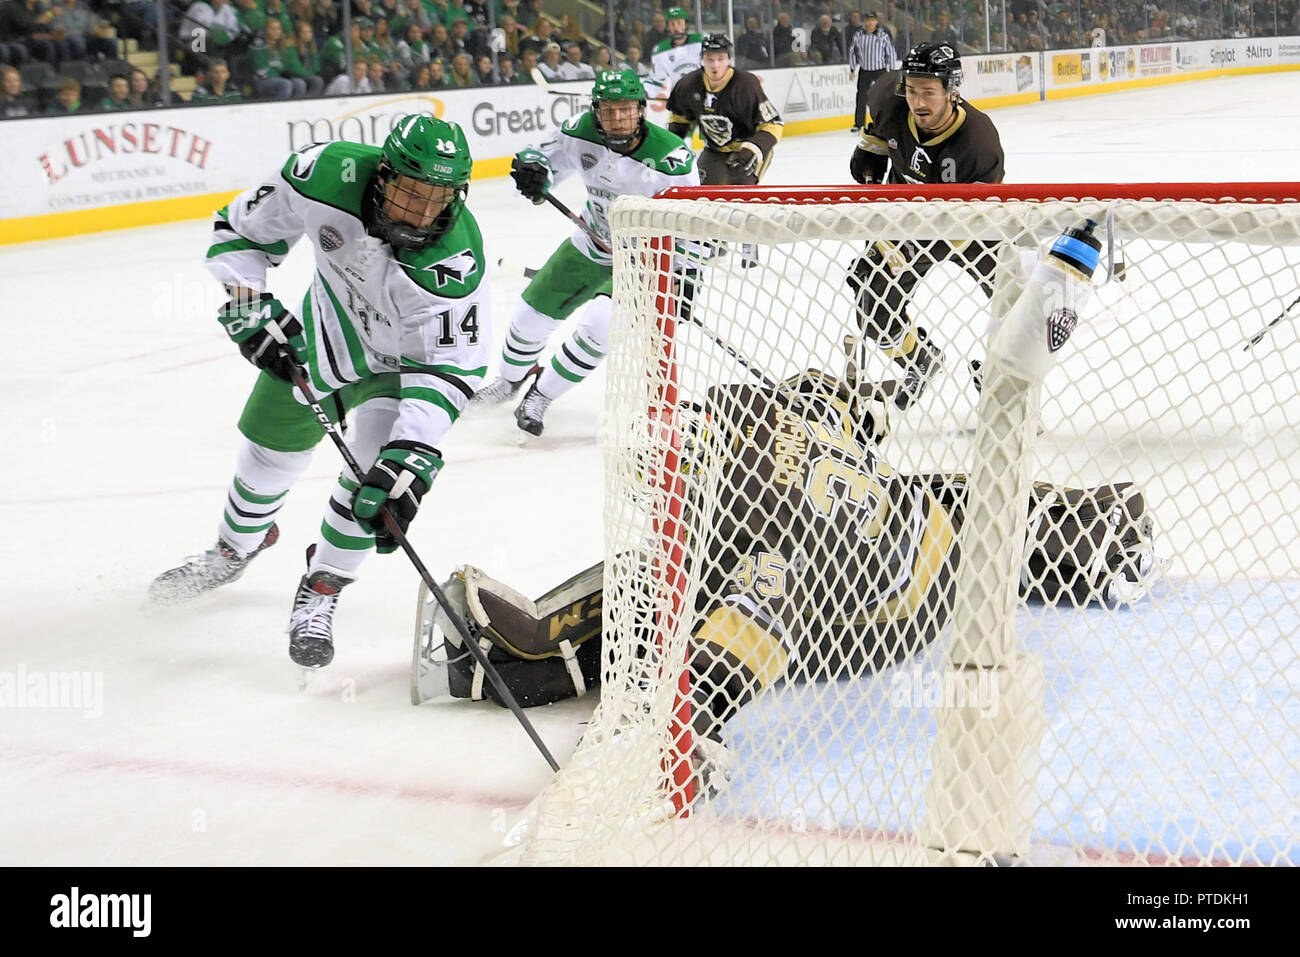 October 6, 2018 North Dakota Fighting Hawks forward Jasper Weatherby (14) tries to beat Manitoba Bisons goaltender Byron Spriggs (35) to the net in the first period of an exhibition men's college hockey game between the Manitoba Bisons and the University of North Dakota Fighting Hawks at Ralph Engelstad Arena in Grand Forks. North Dakota won 3-2 in overtime. Photo by Russell Hons/CSM - Stock Image